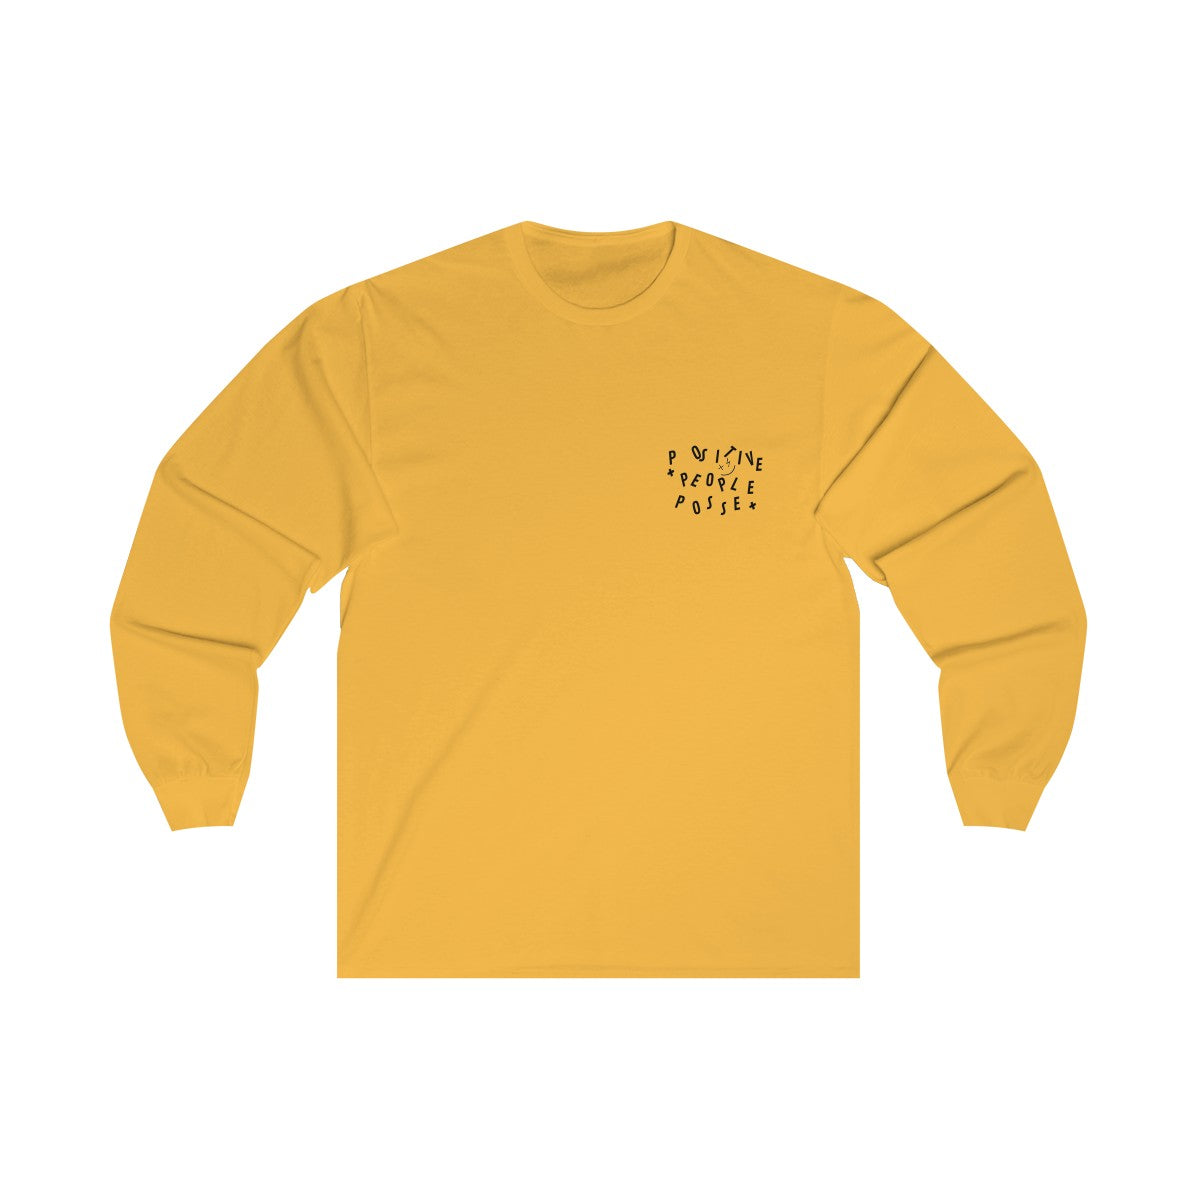 PPP SOUPY Unisex Long Sleeve Tee - +Positive People Posse+